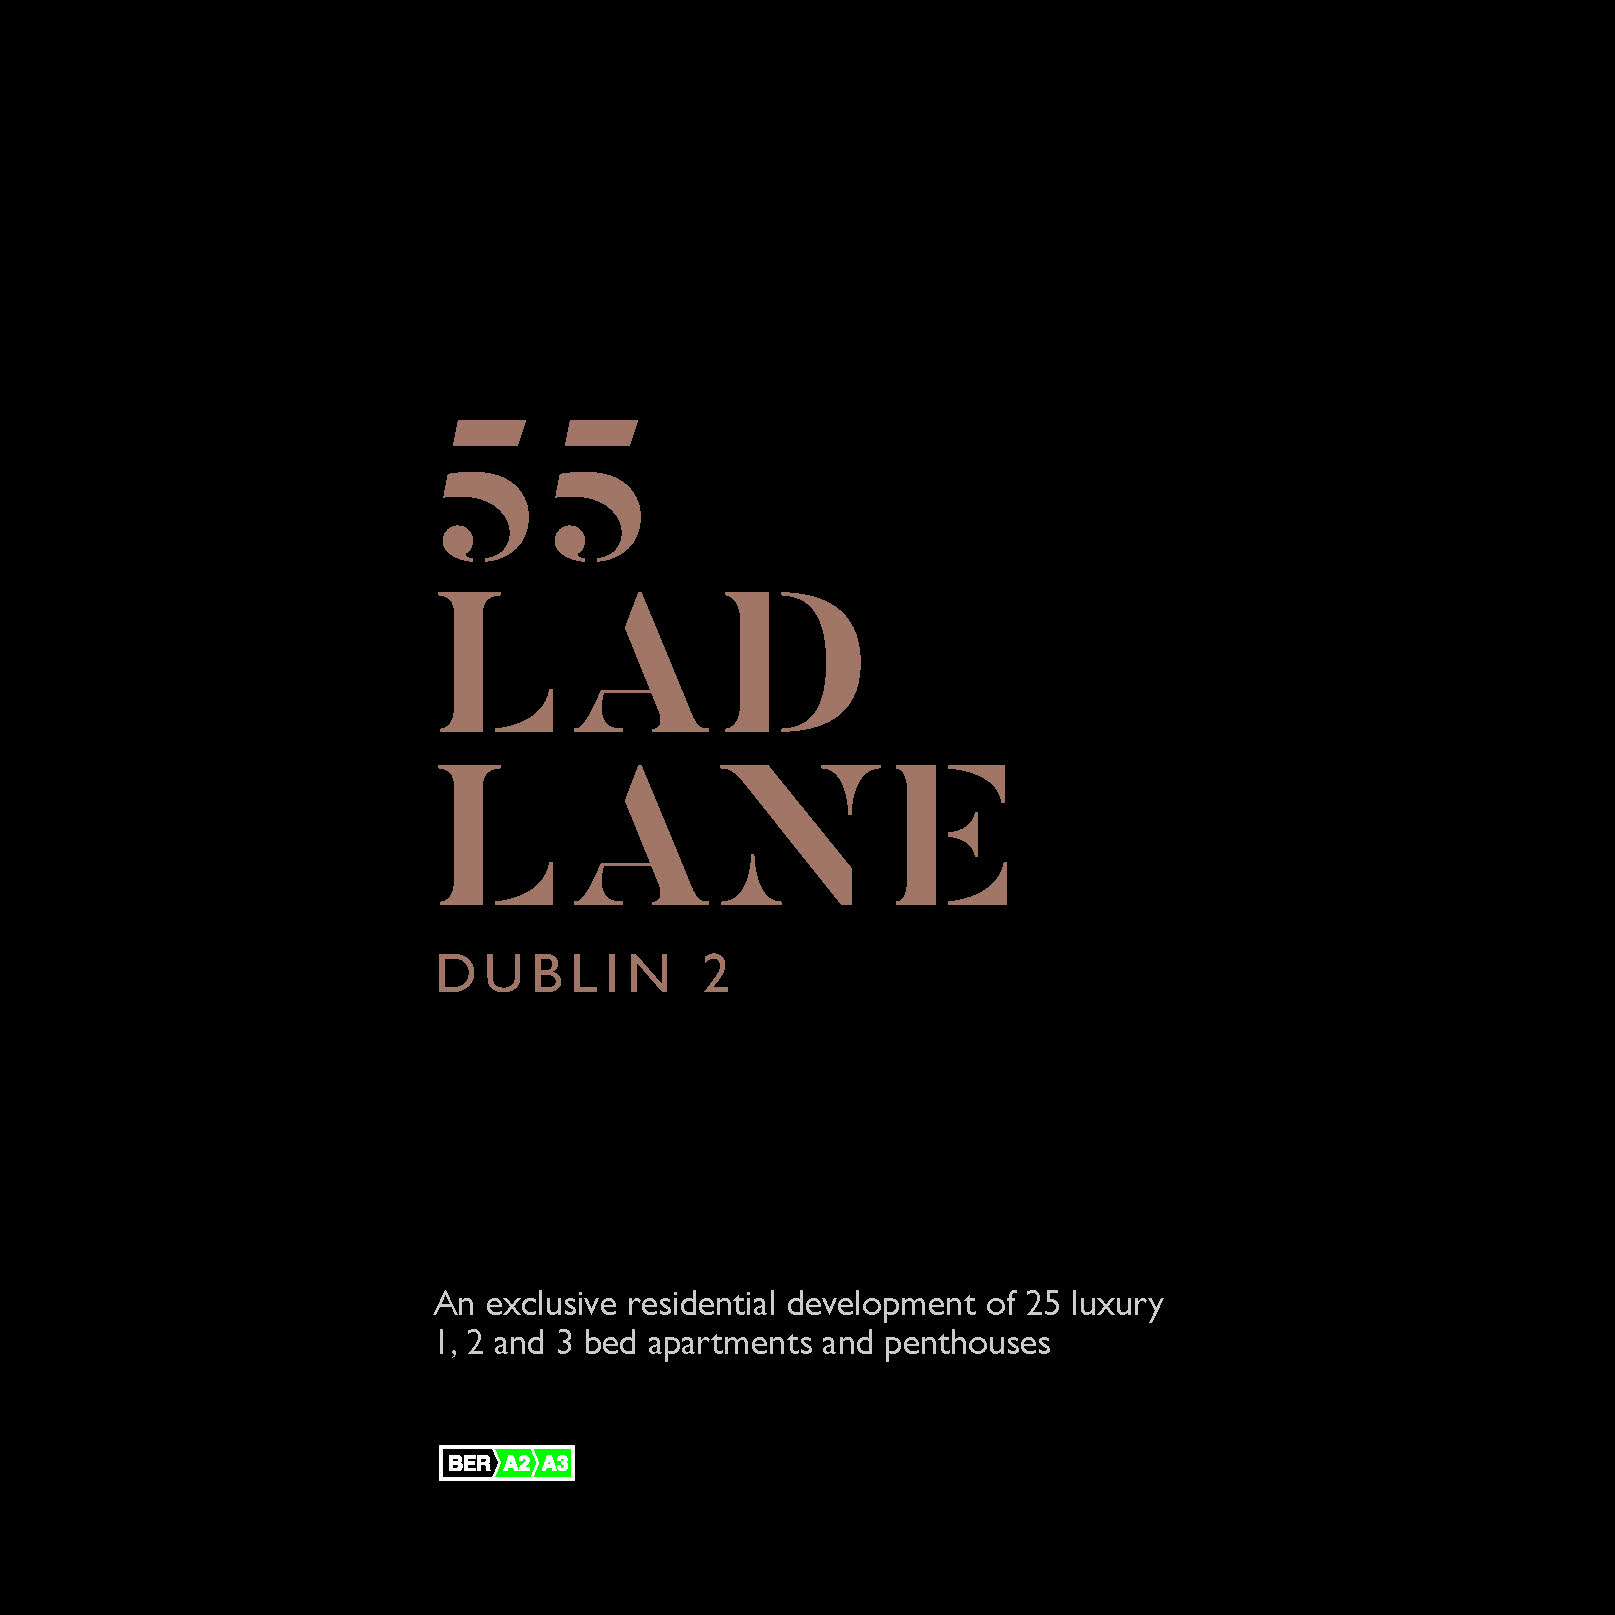 Pages from 55 Lad Lane Brochure